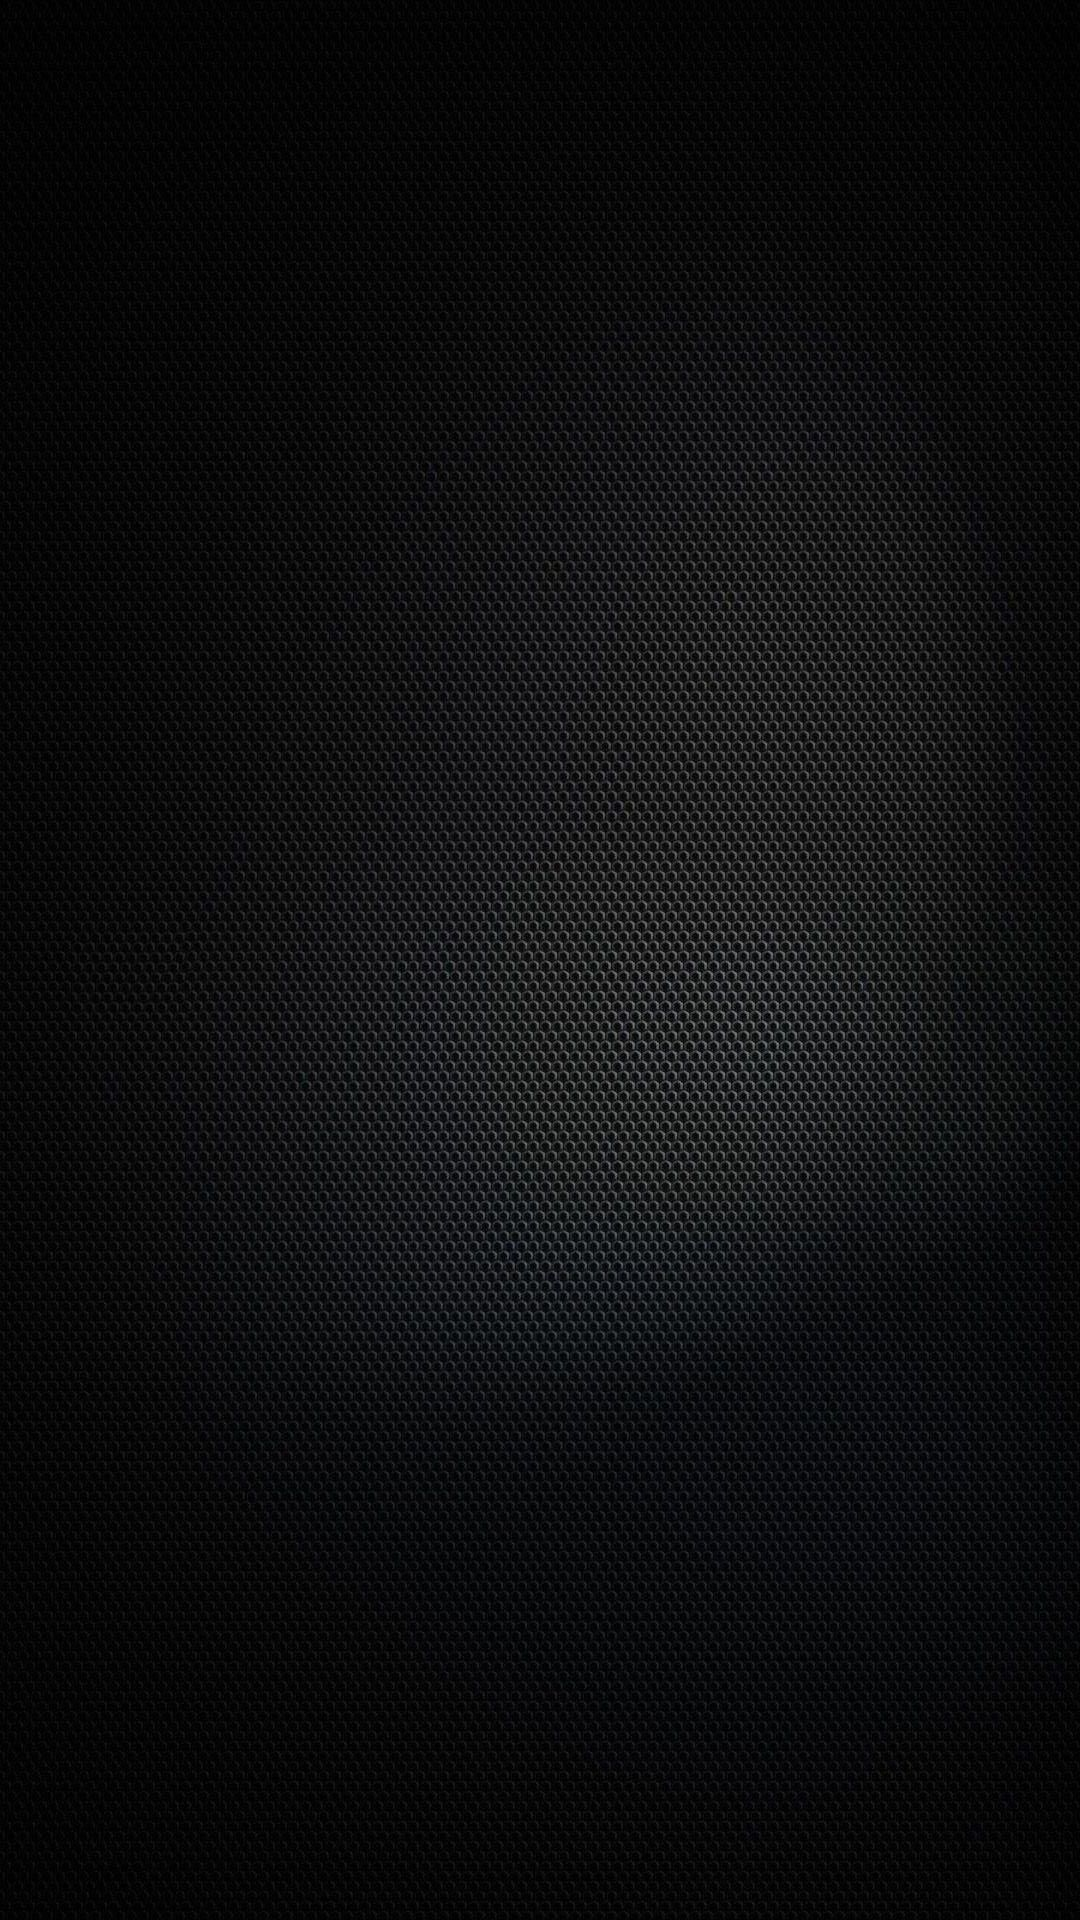 pure black wallpapers top